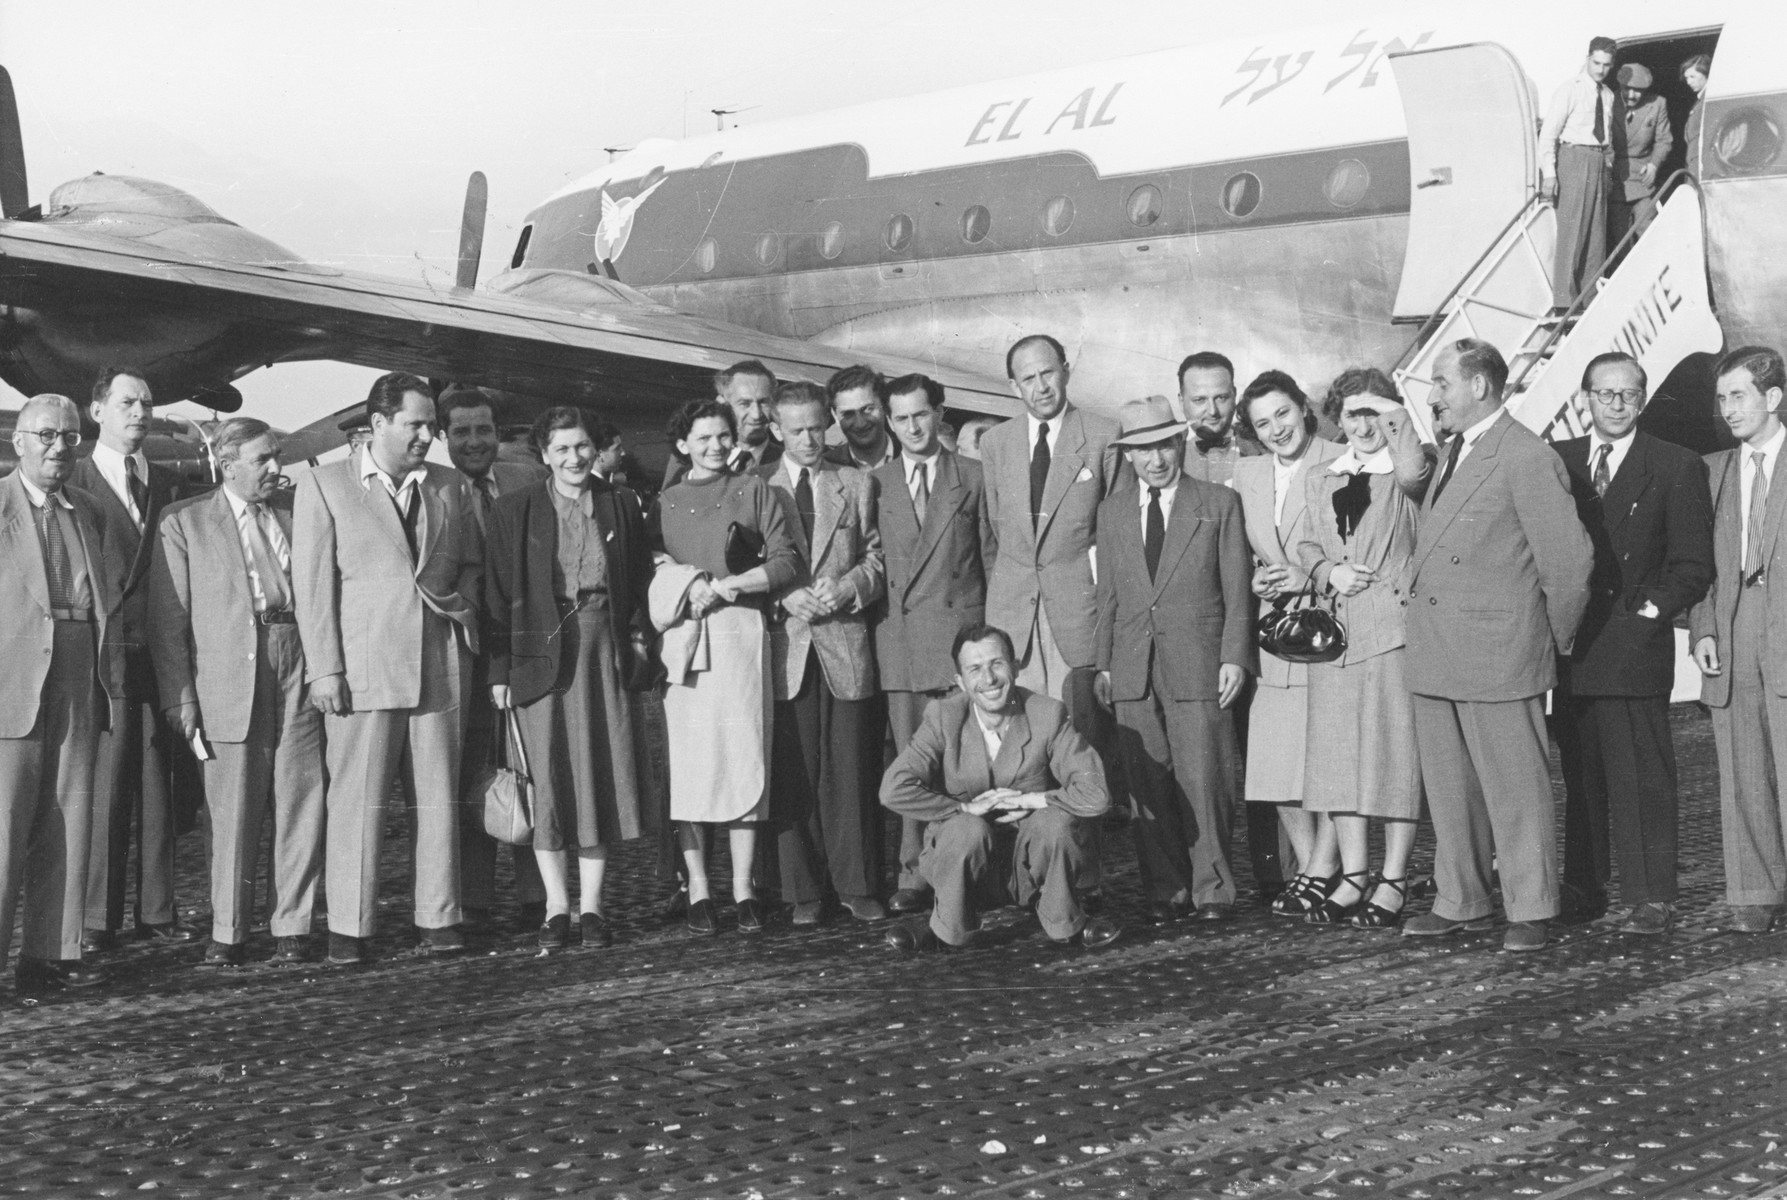 Jewish DPs pose in front of an El Al airplane prior to their departure for Israel.  Among those pictured is Isak Bank (tallest man to the right of center).